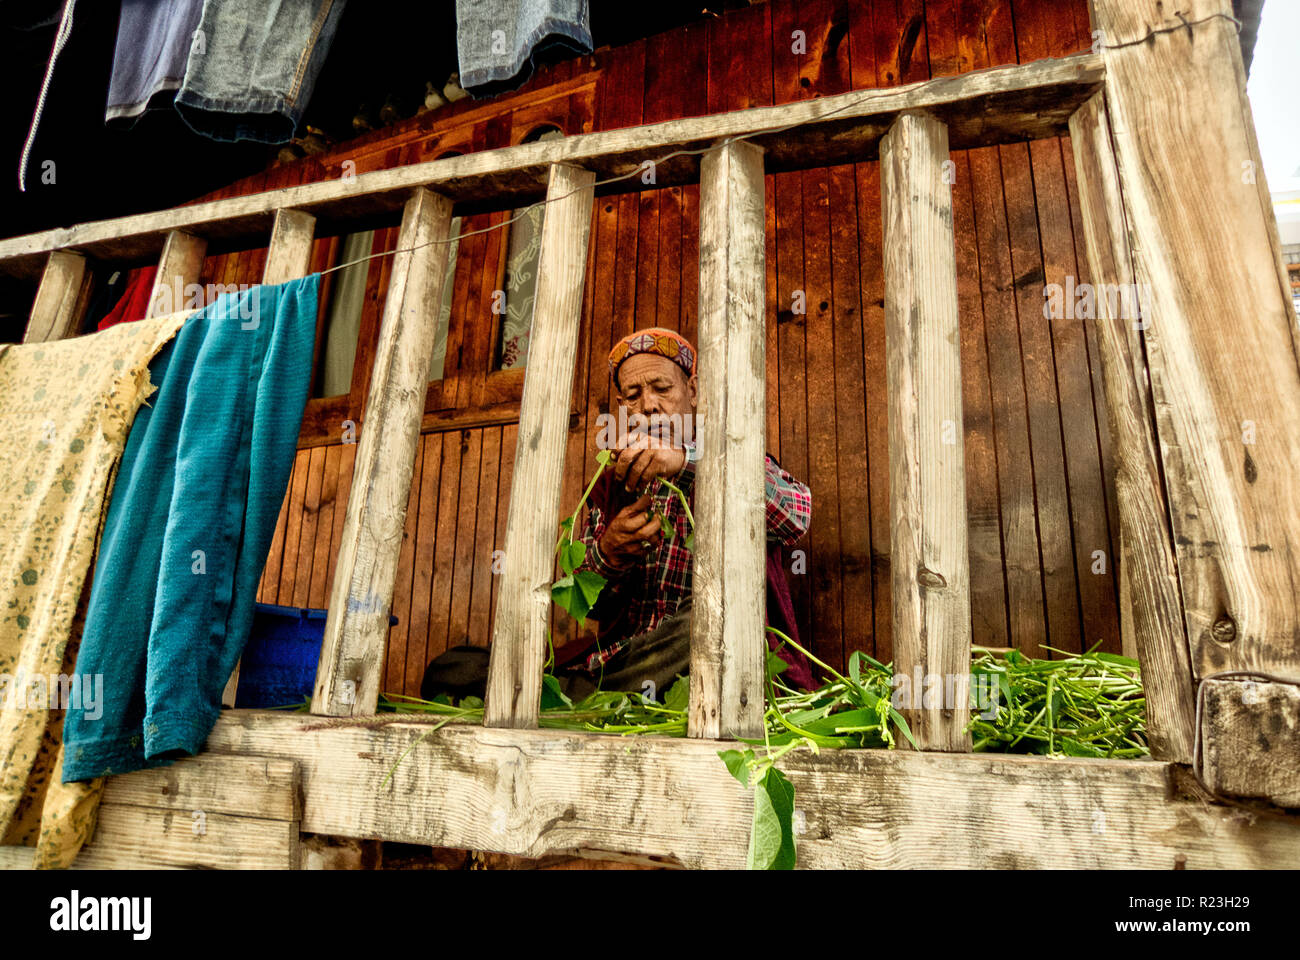 India, Himachal Pradesh, Vashist, 08/11/2010: a man selects vegetables to eat on the balcony of a traditional vashist house - Stock Image